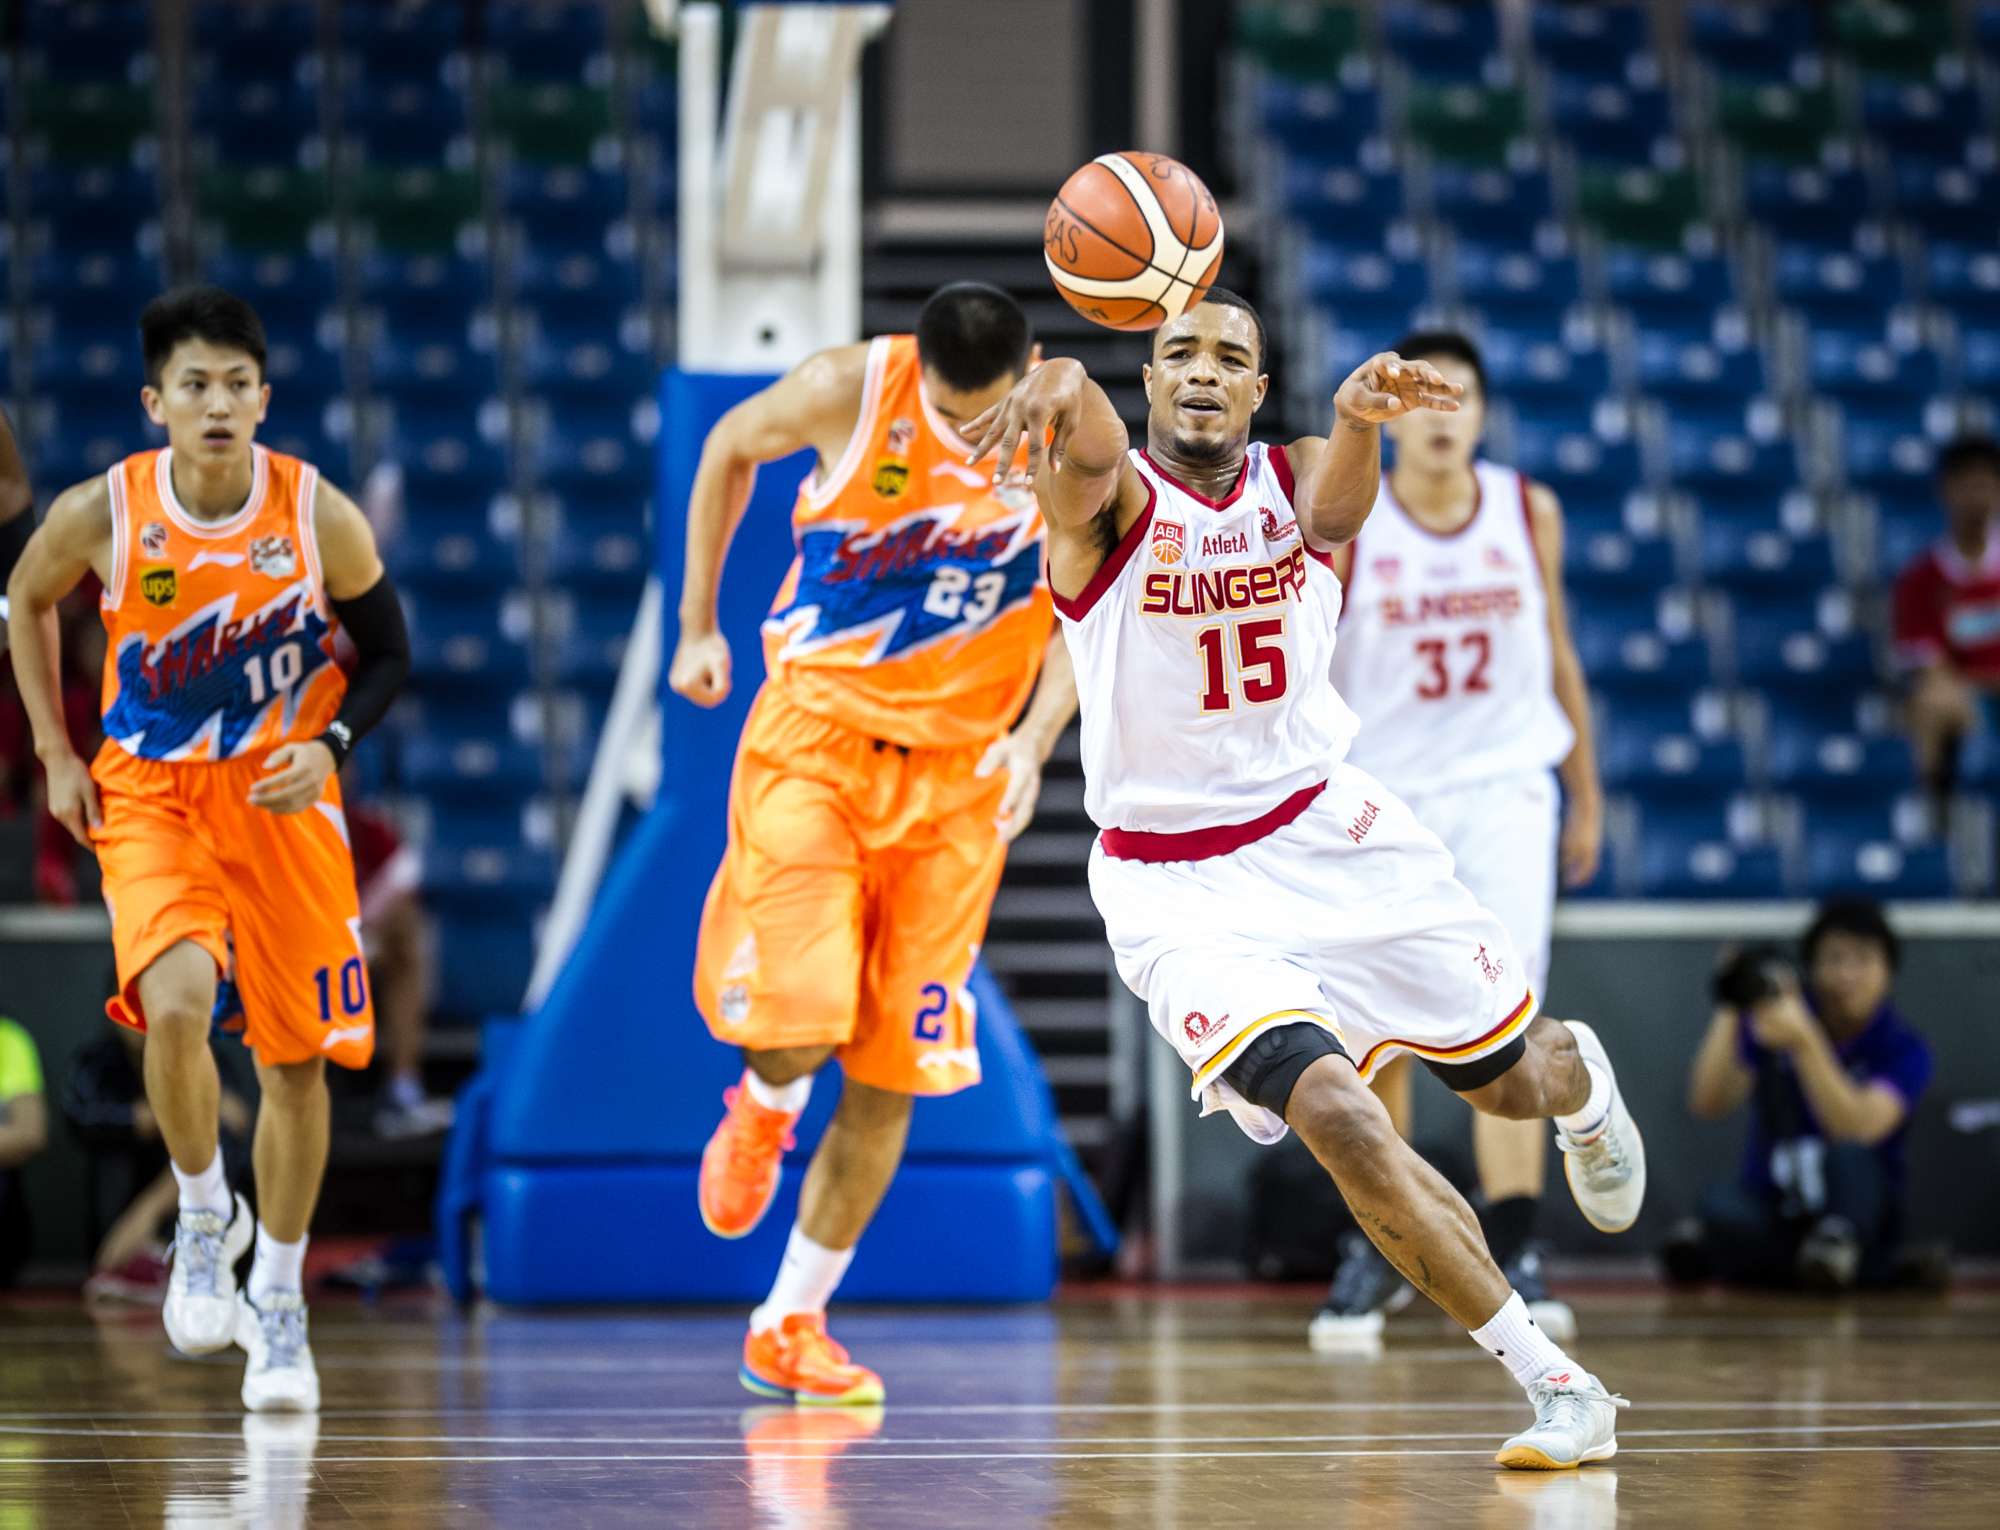 A Singapore Basketball player passes the ball during the Merlion Cup basketball competition at the OCBC Arena.